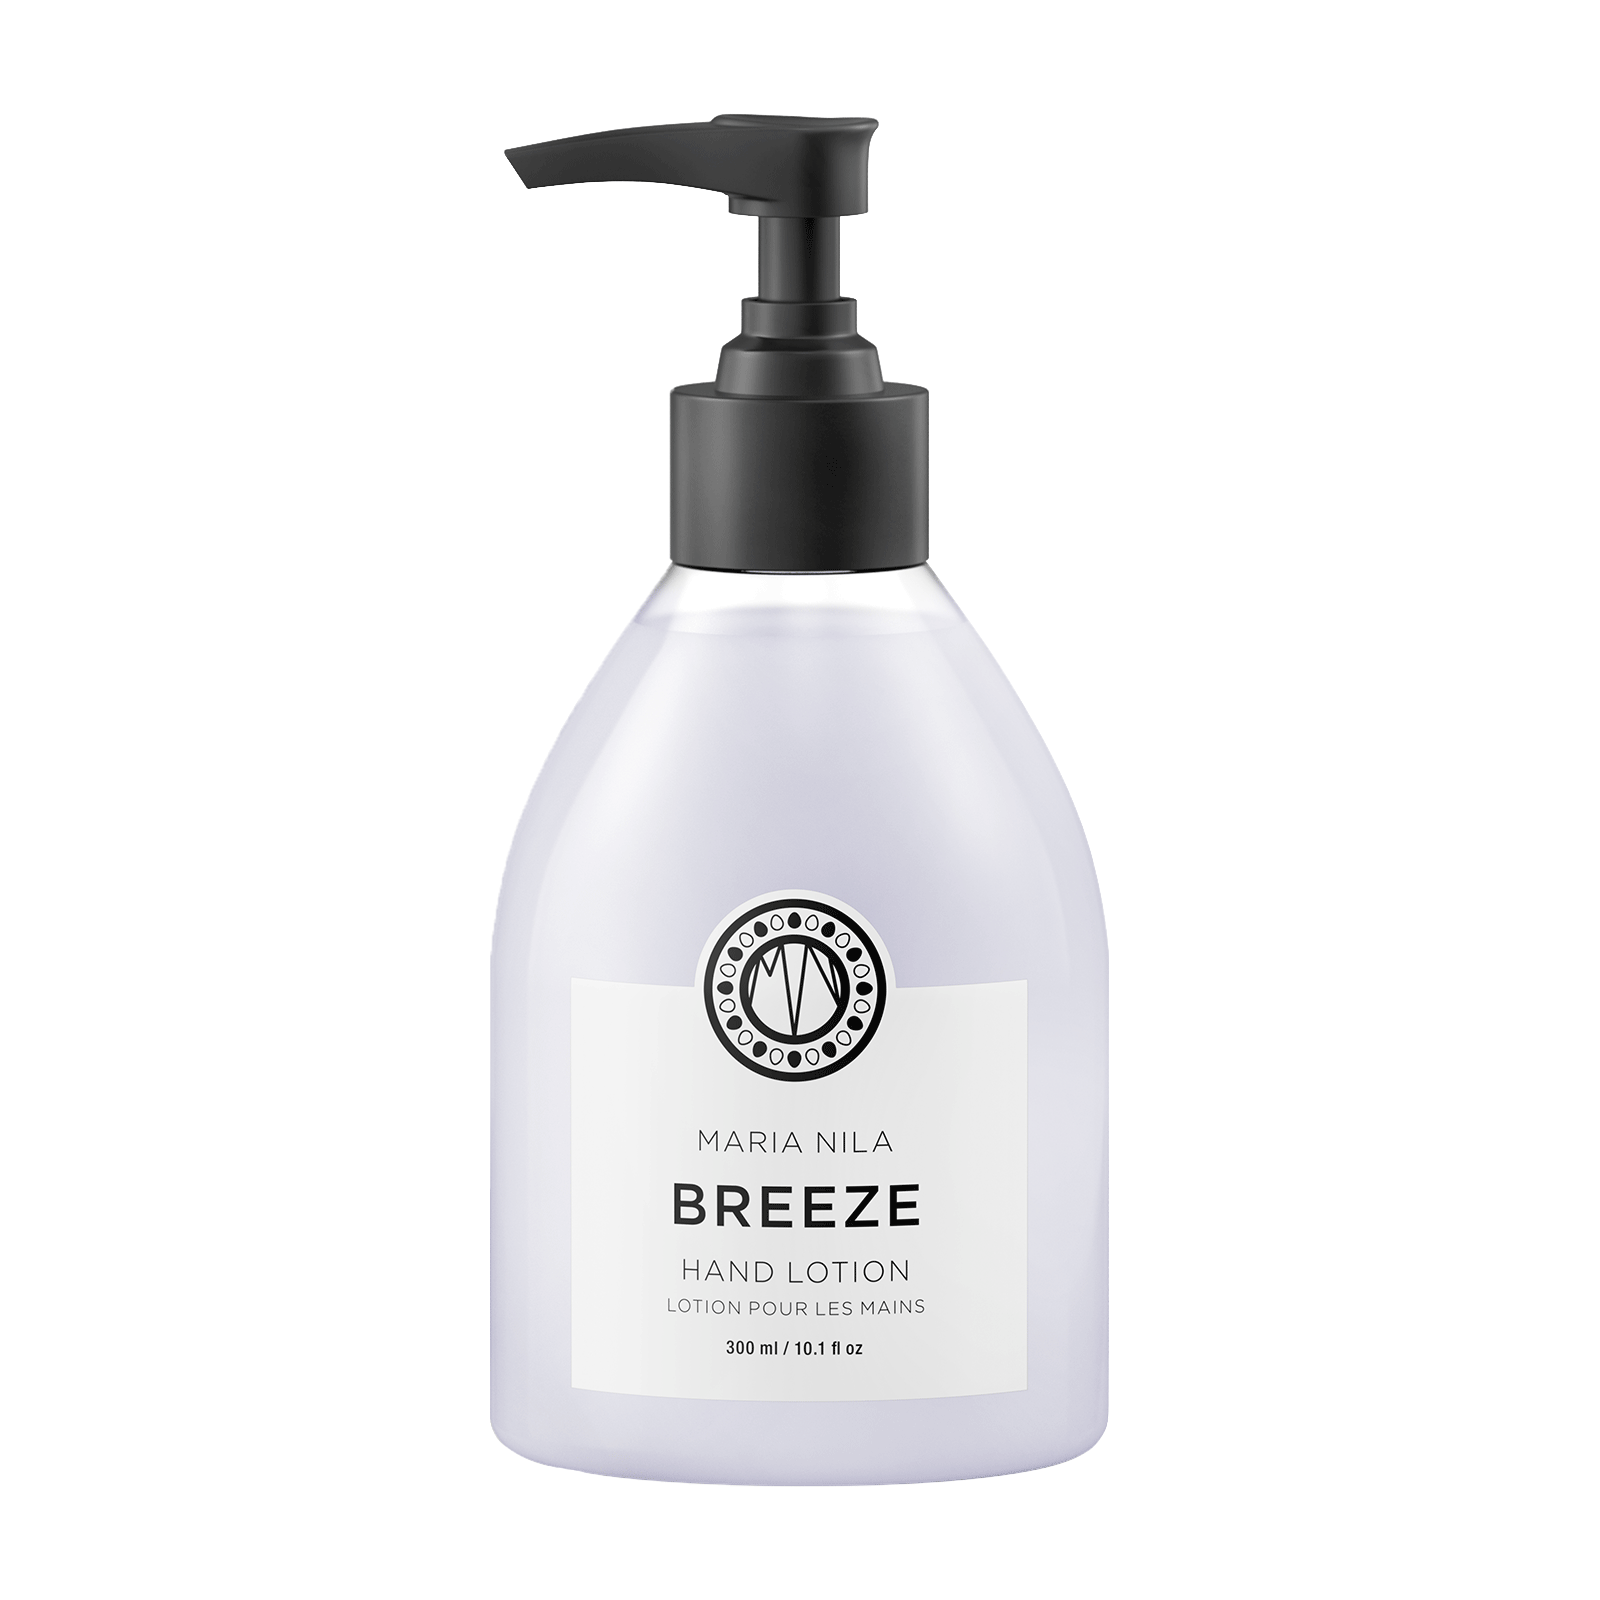 Breeze Hand Lotion